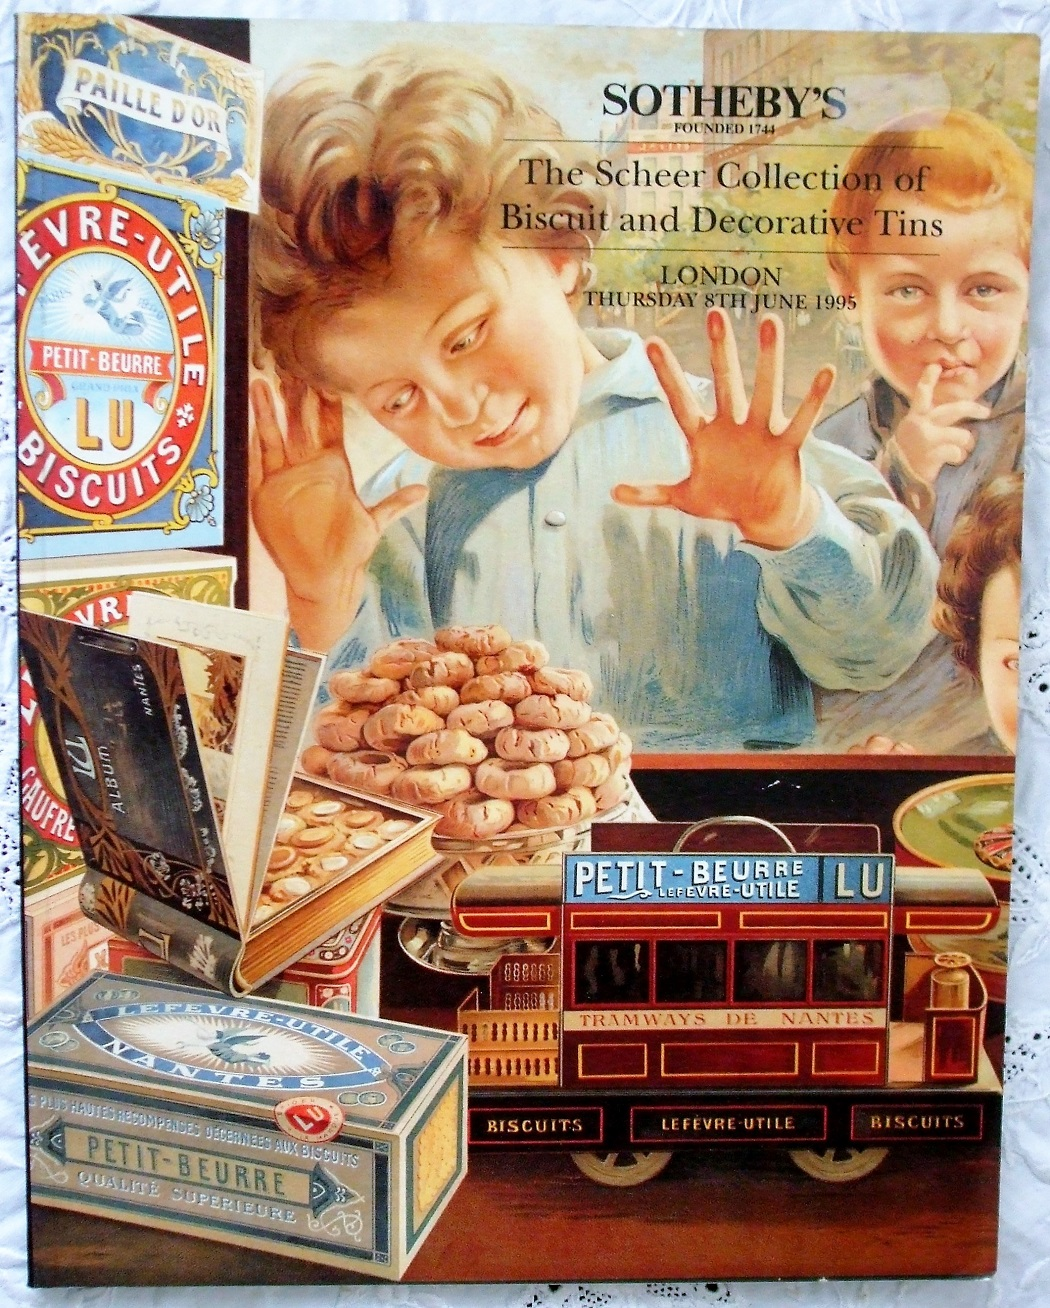 S LN5344 BISCUIT The Scheer Collection of Biscuit and Decorative Tins L 08. 06. 1995